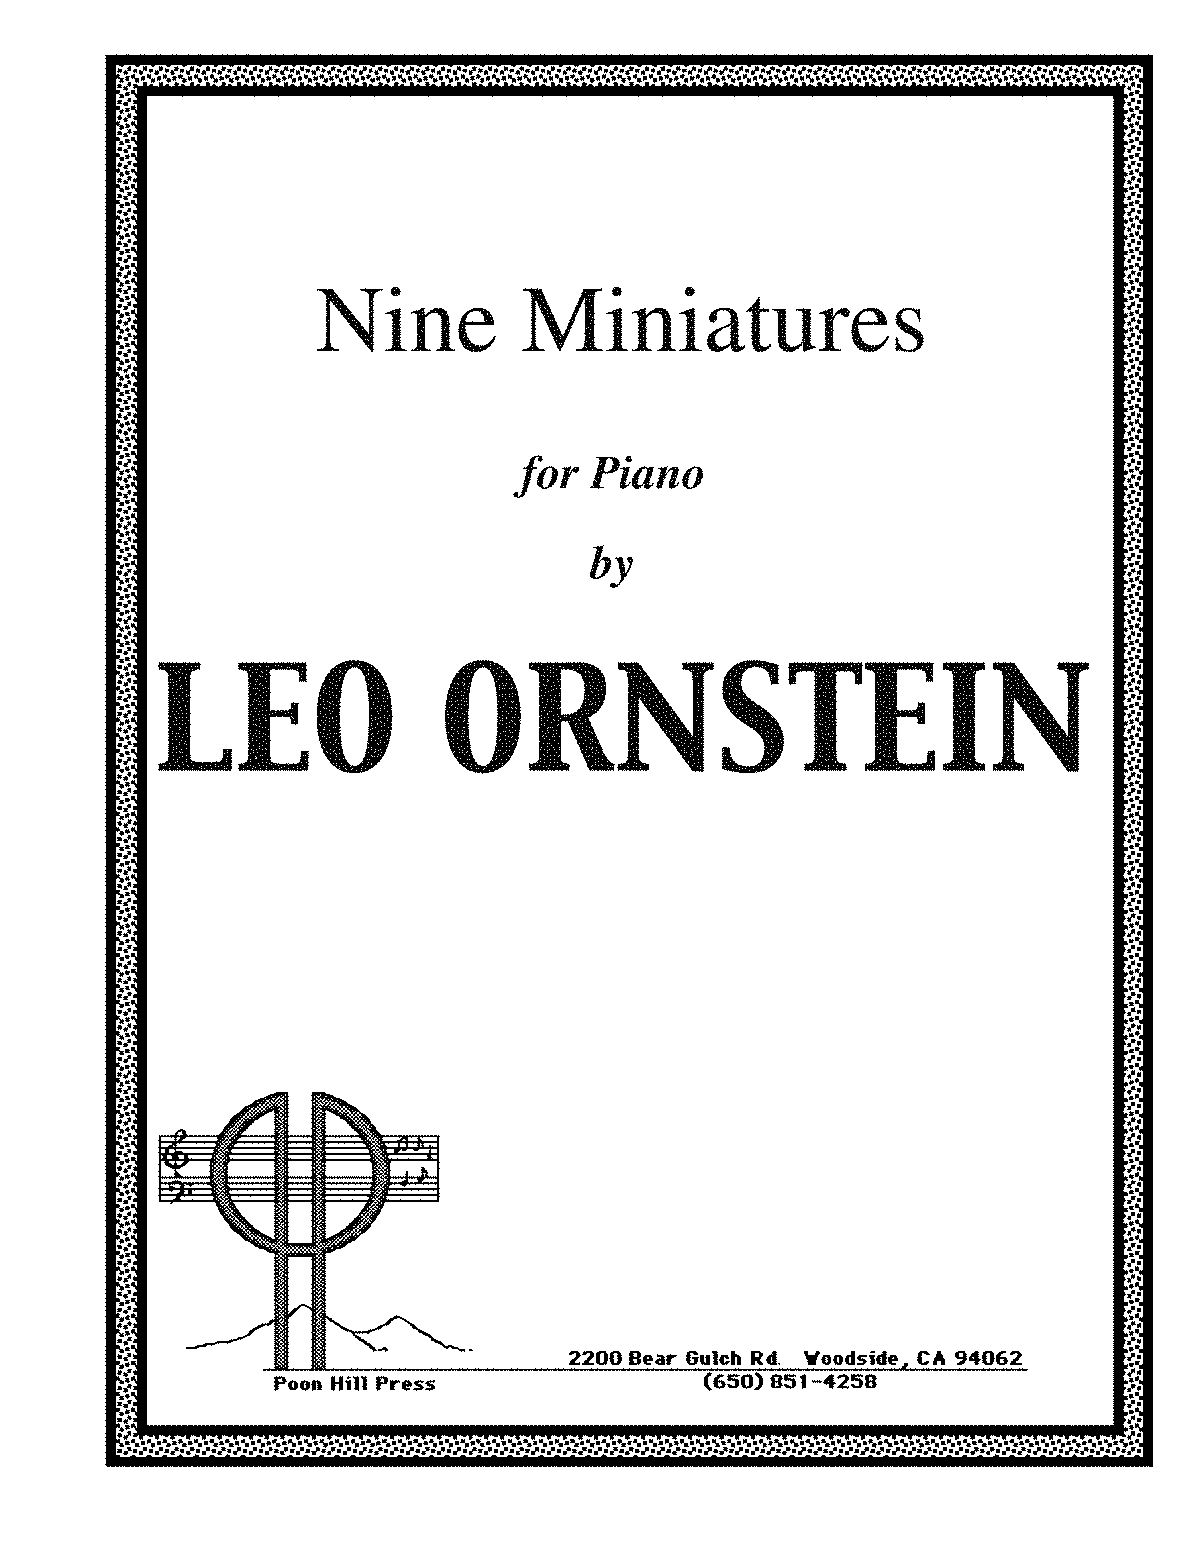 S072 - Nine Miniatures.pdf